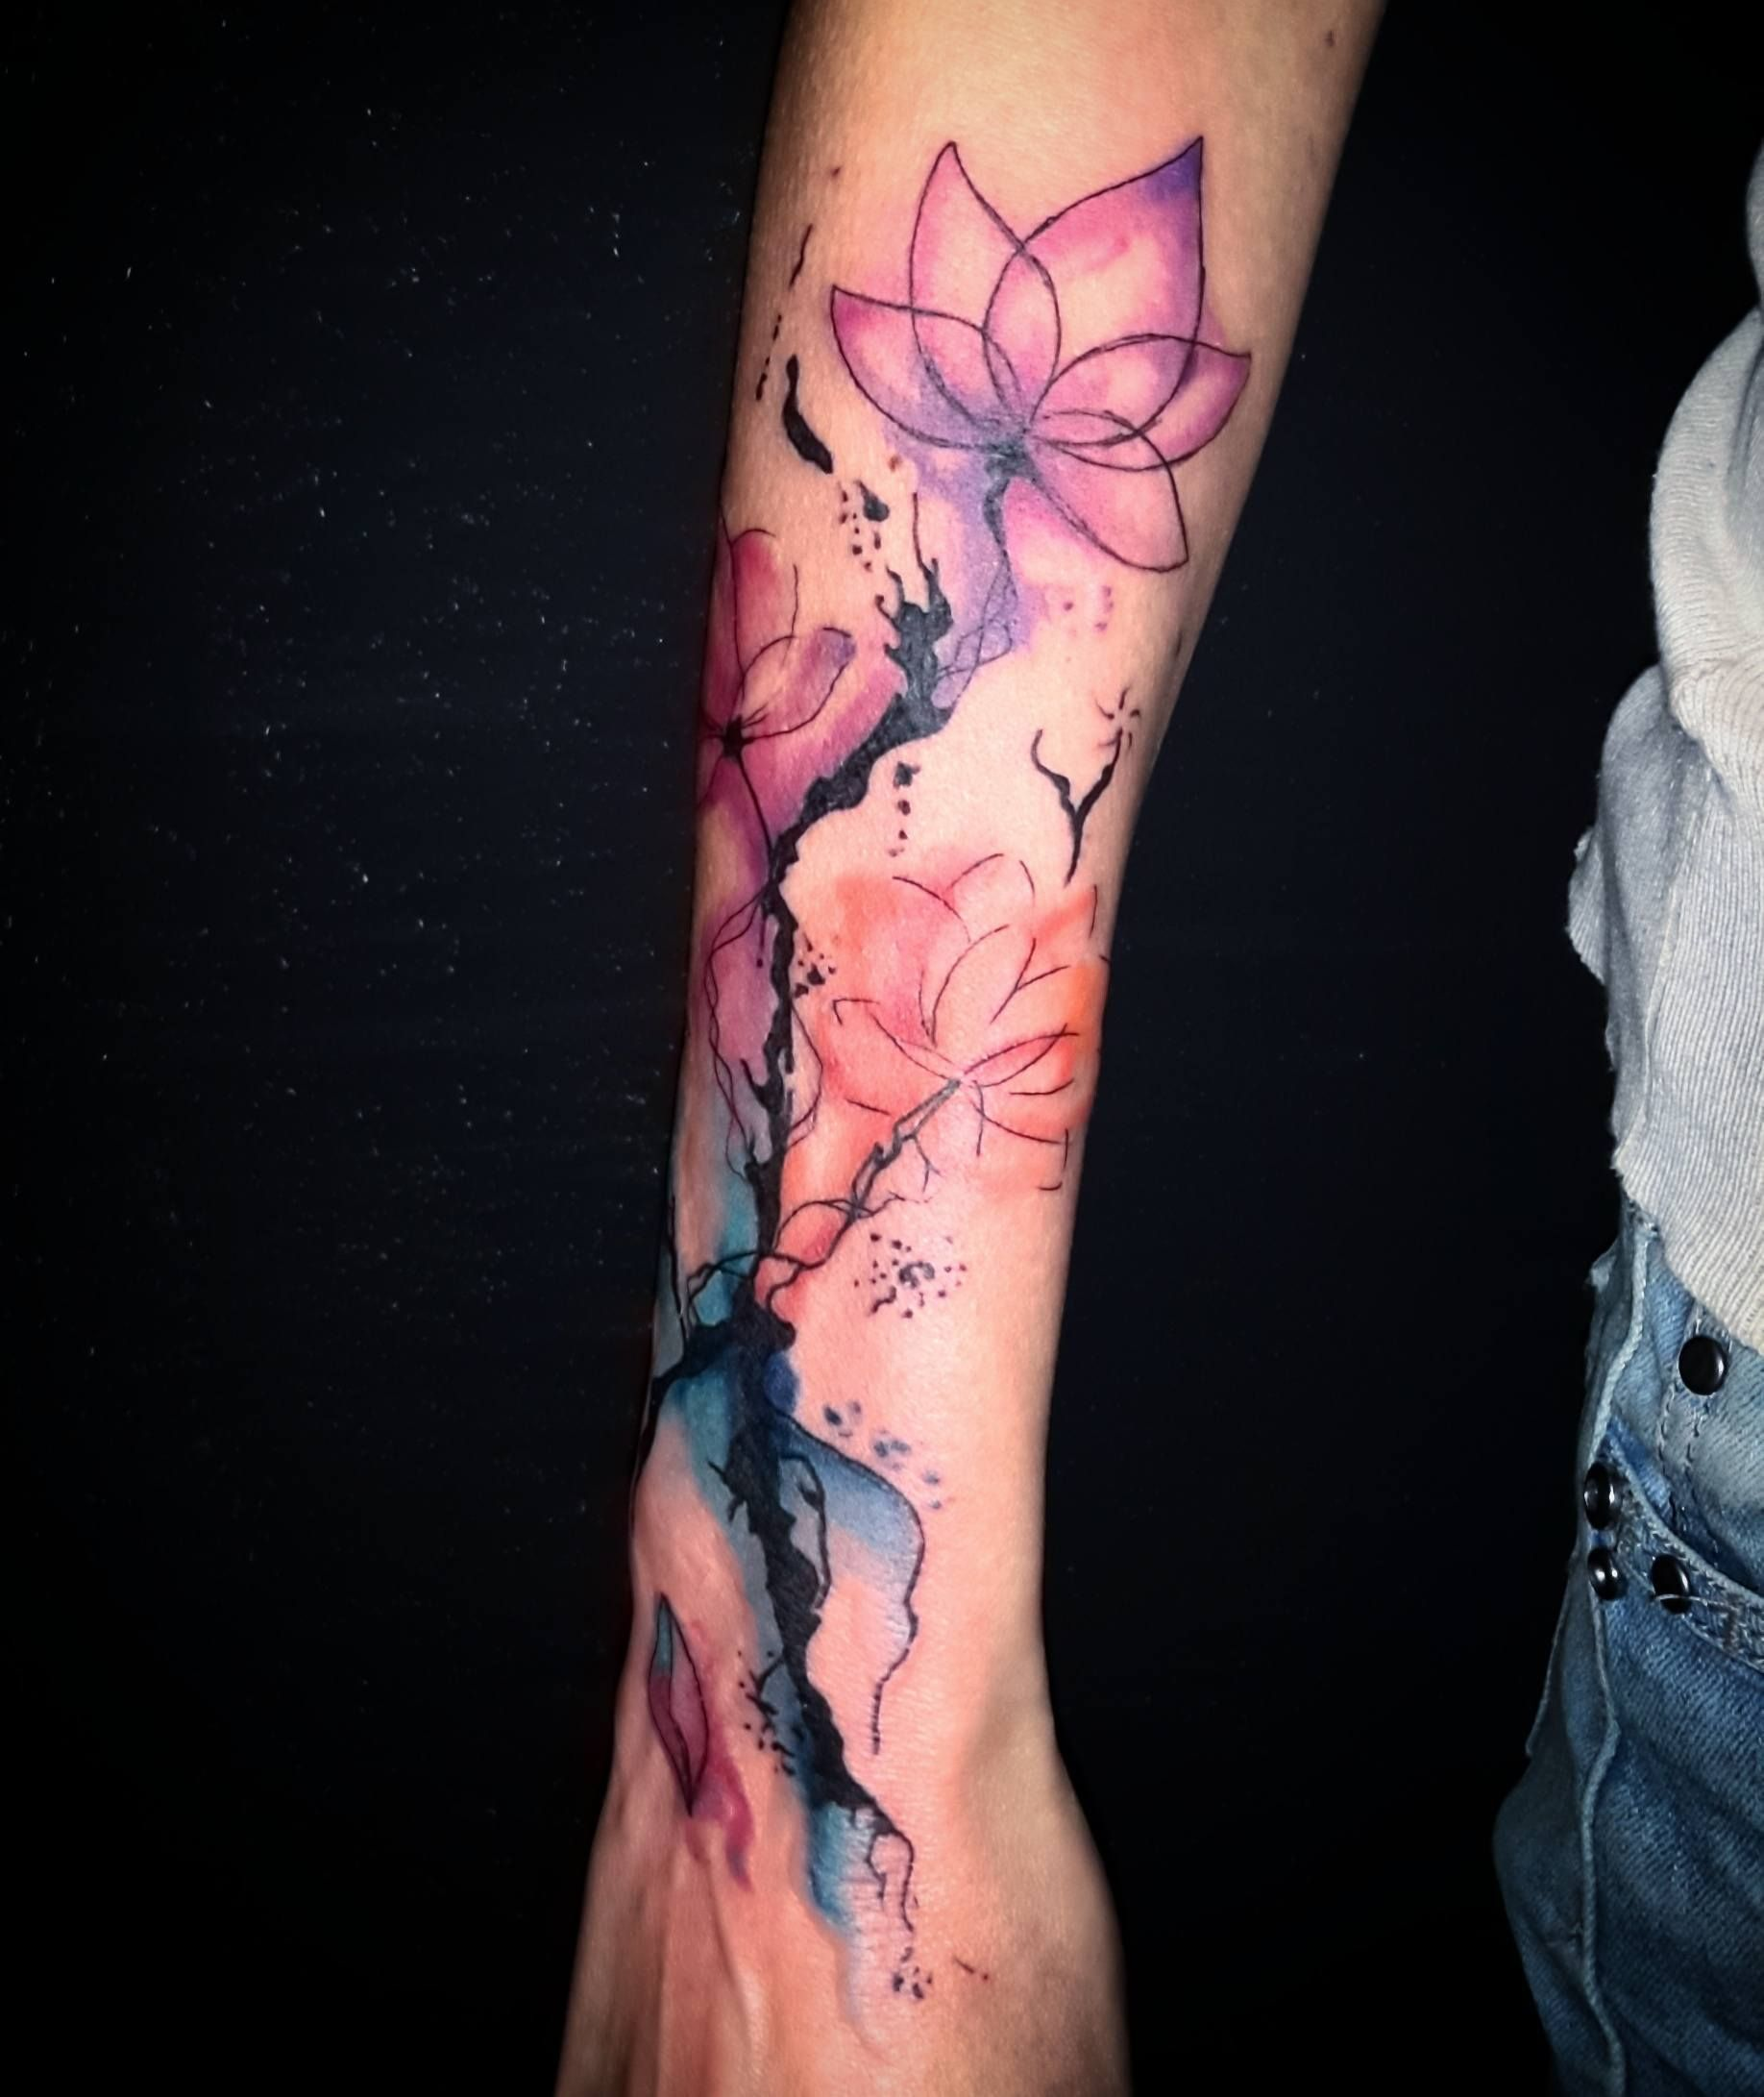 Tatouage Aquarelle Bras Christophe Studio Le Salon Tatouage